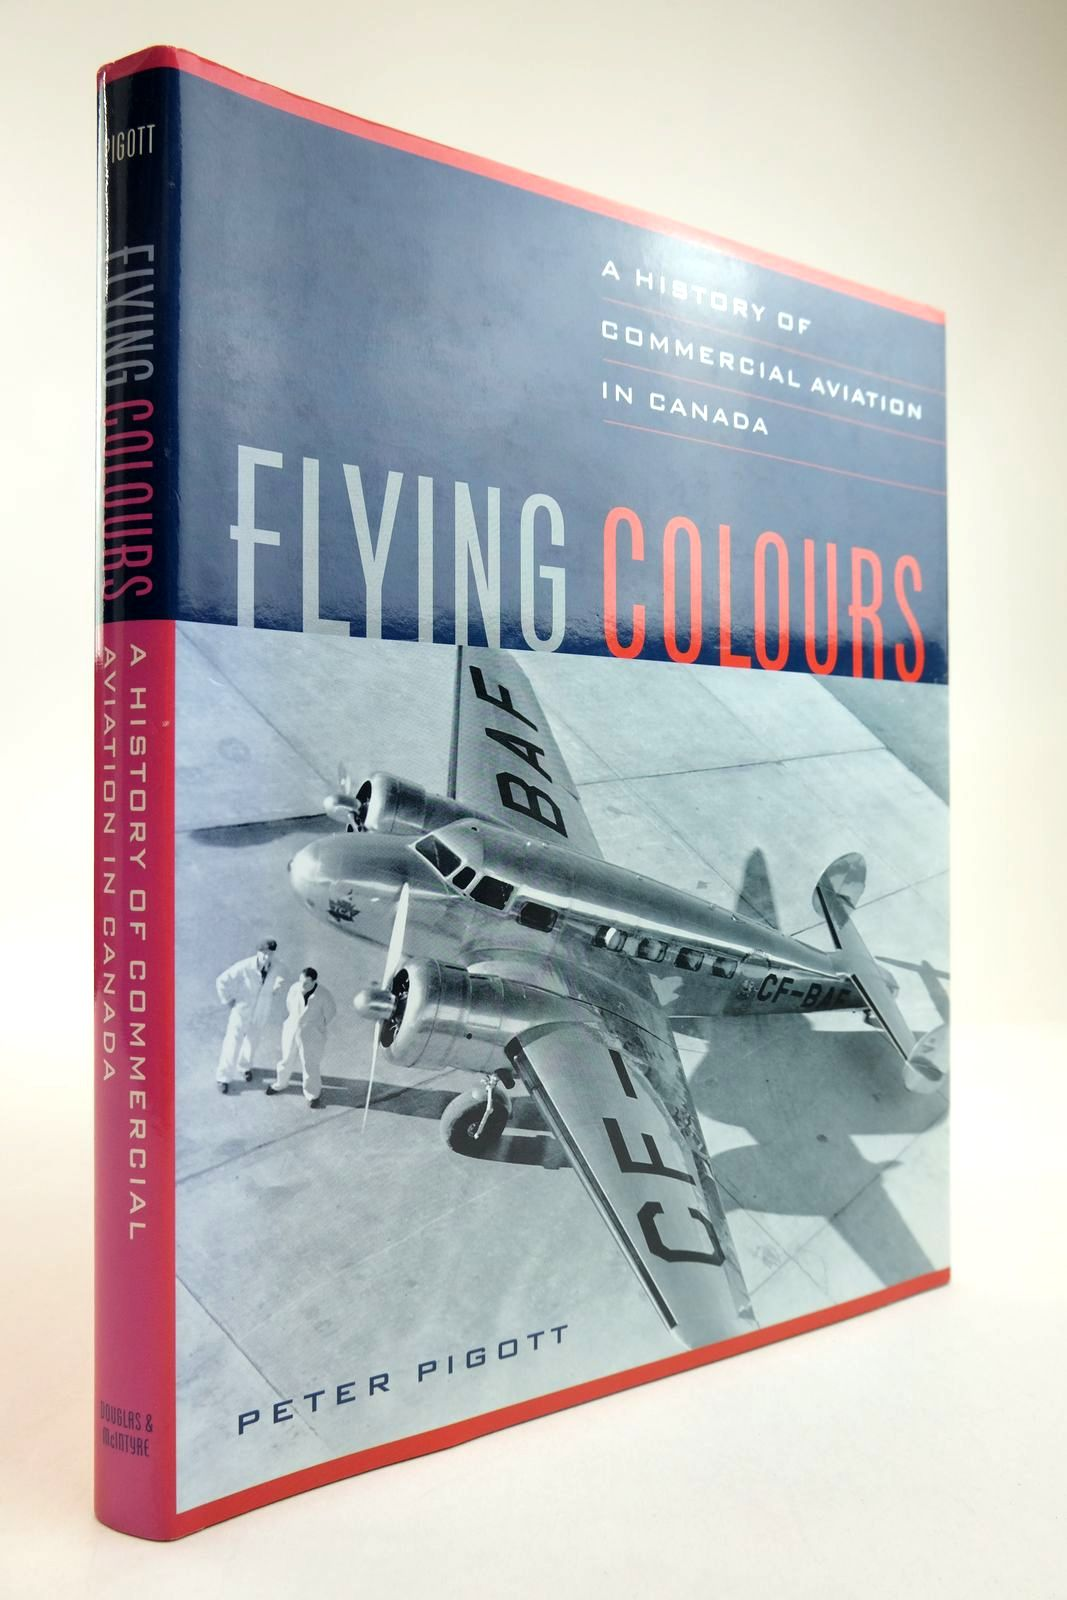 Photo of FLYING COLOURS: A HISTORY OF COMMERCIAL AVIATION IN CANADA written by Pigott, Peter published by Douglas & McIntyre (STOCK CODE: 2134235)  for sale by Stella & Rose's Books